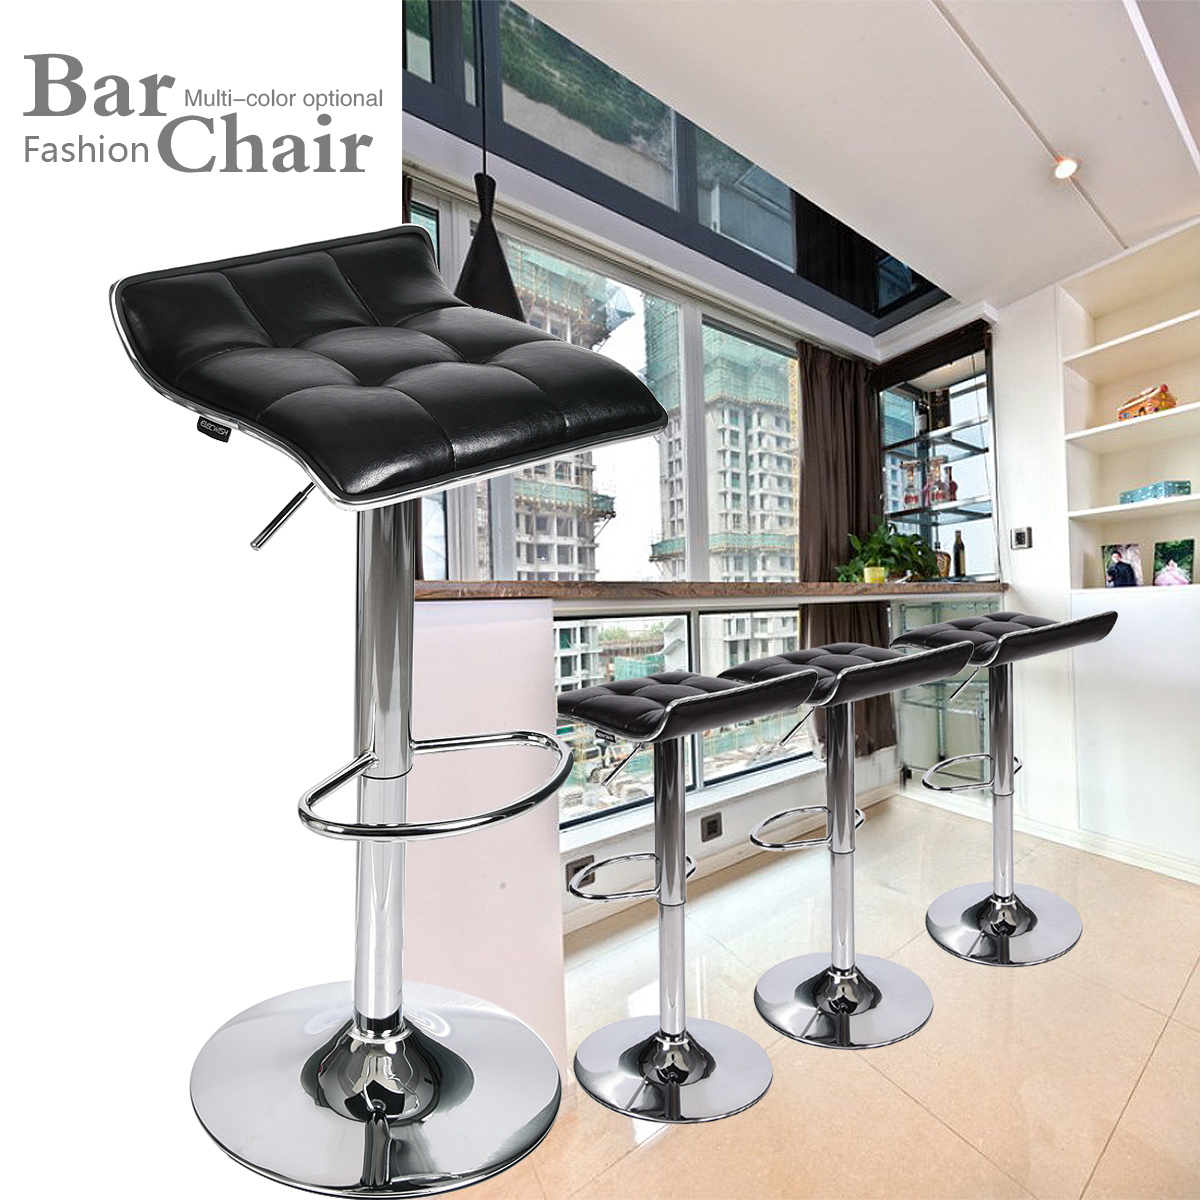 Set Of 4 Bar Stools Counter Adjustable Swivel PU Leather Dinning Chair Black US